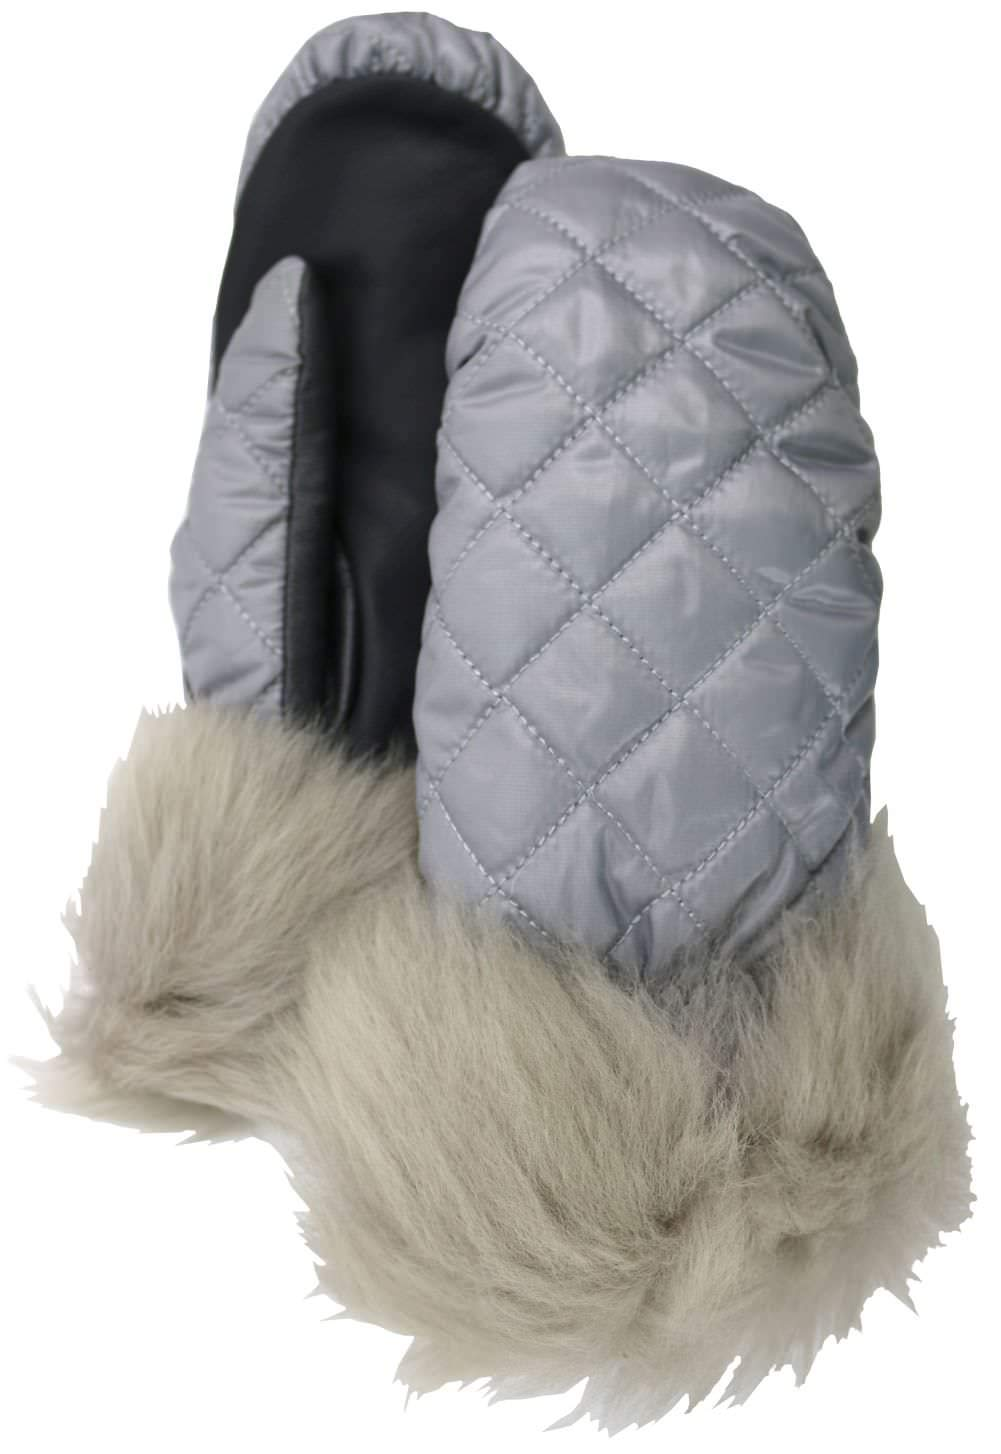 UGG Womens Quilted All Weather Mitten, Silver, Size Large/X-Large by UGG